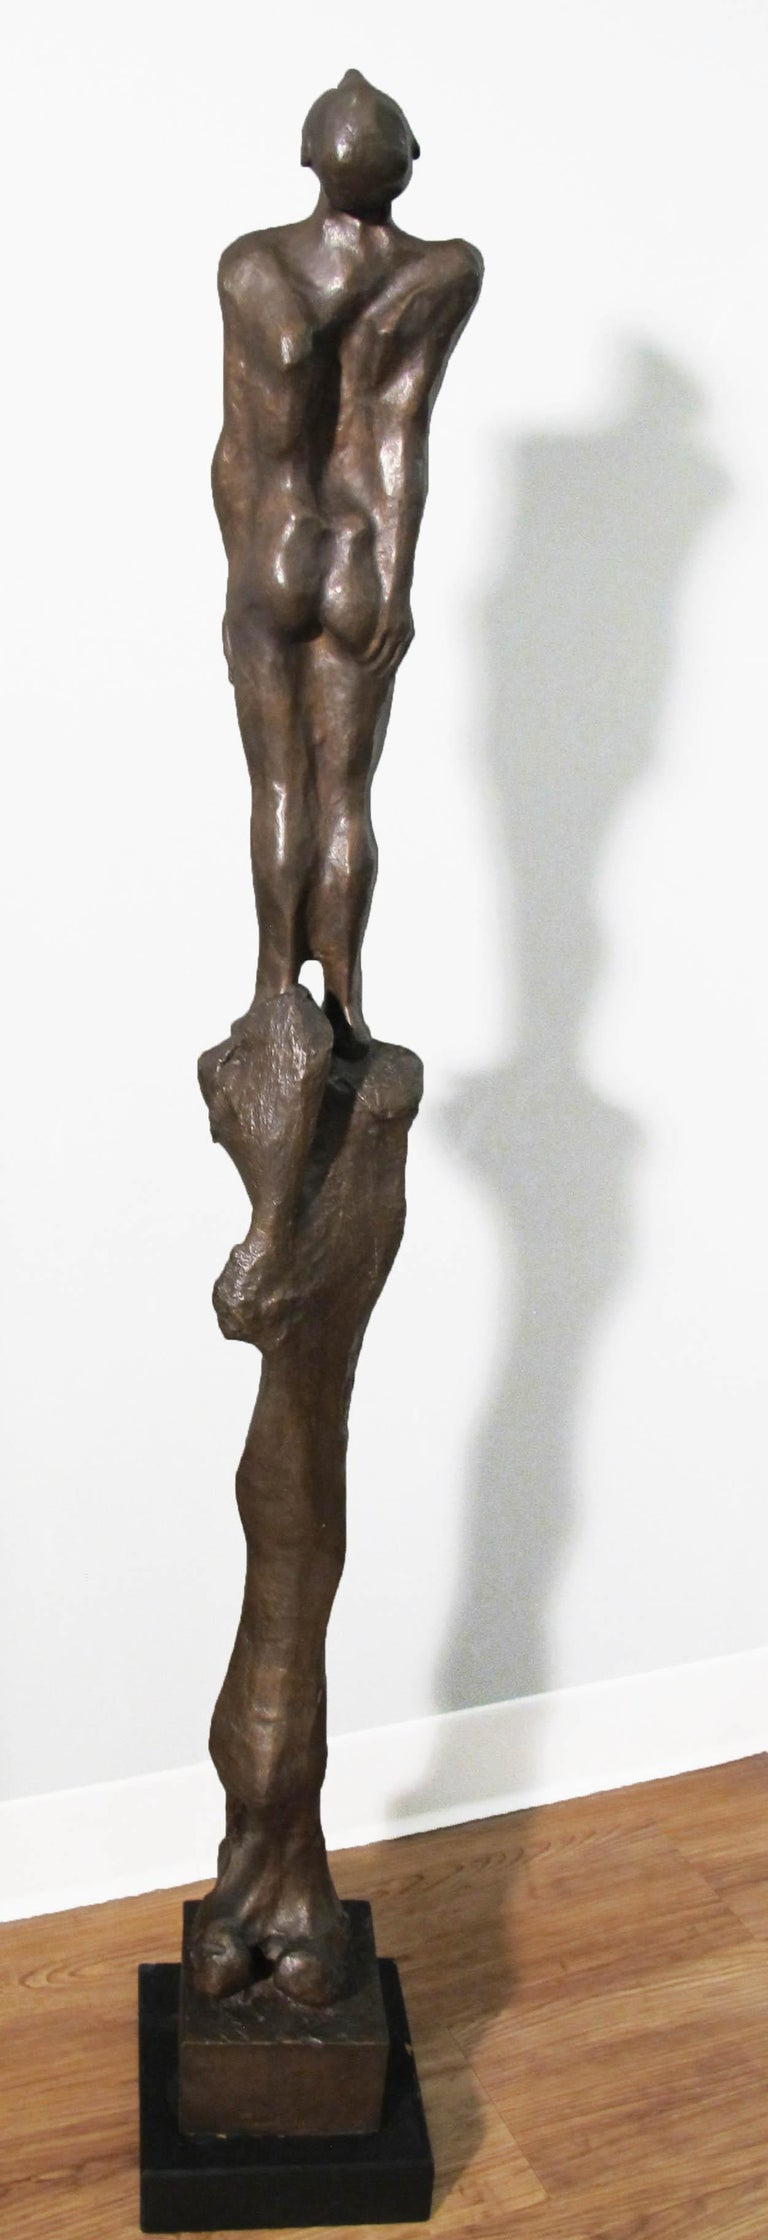 Stylite - Sculpture by Michael Ayrton